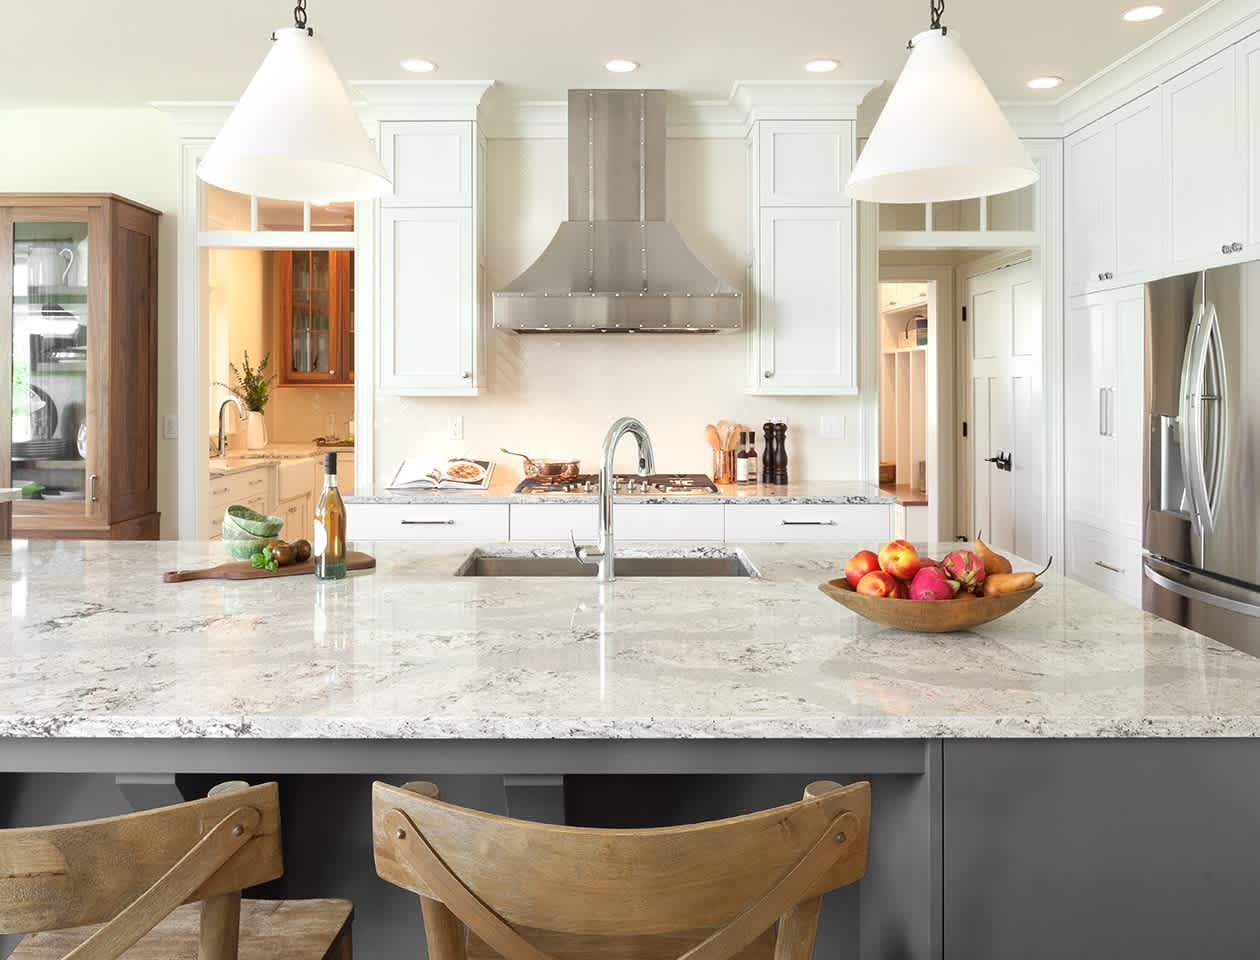 Top 7 Best Kitchen Remodel Ideas for 2019